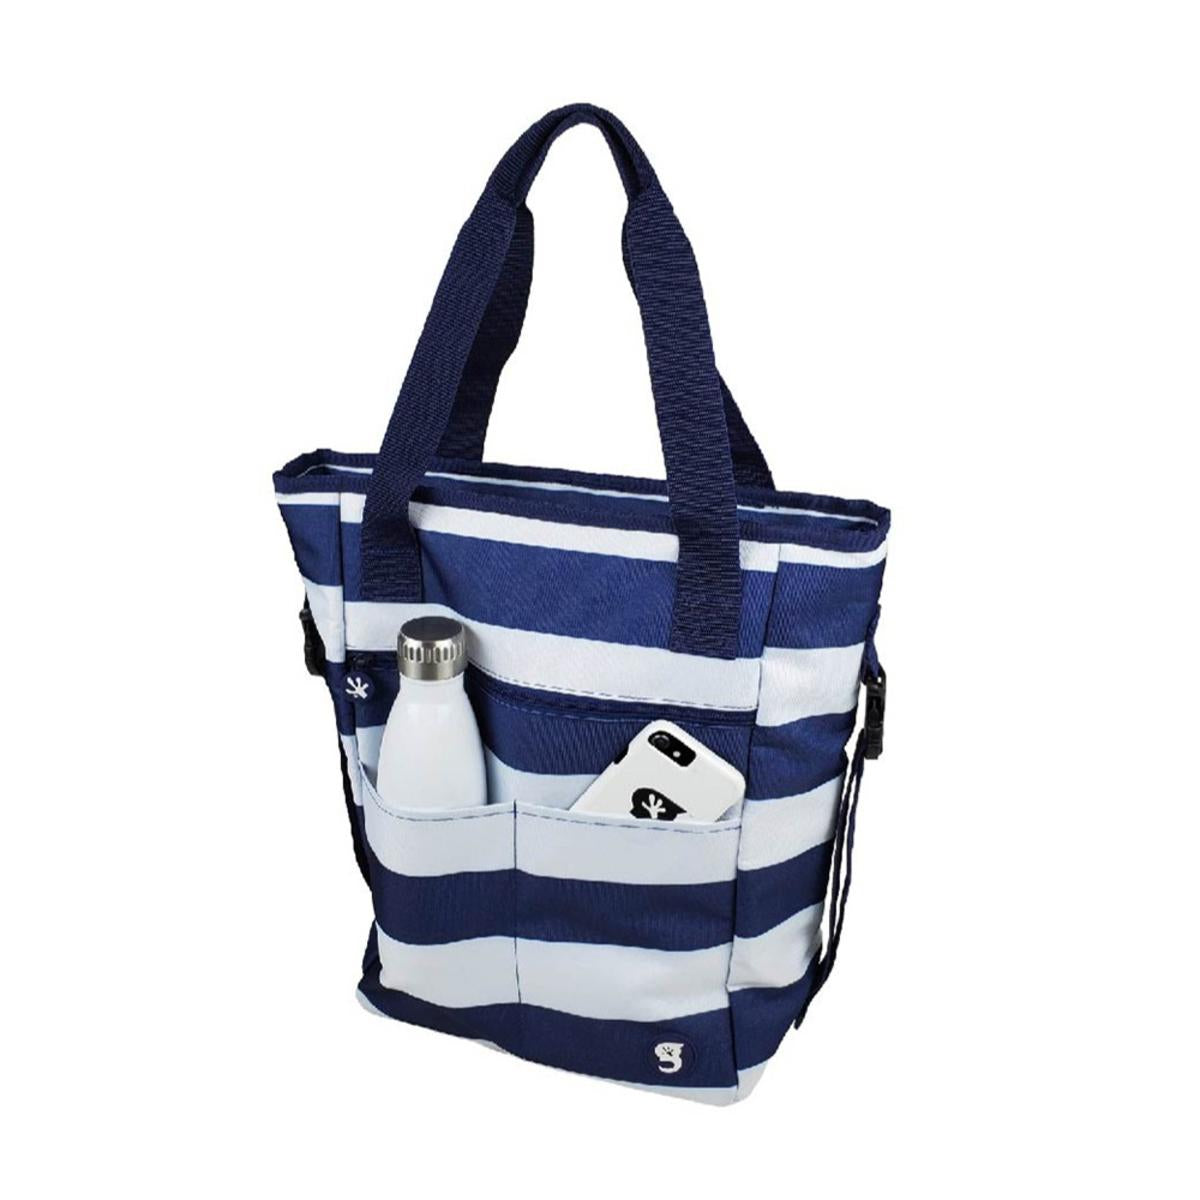 Geckobrands Convertible Tote & Backpack - Blue/White Stripe